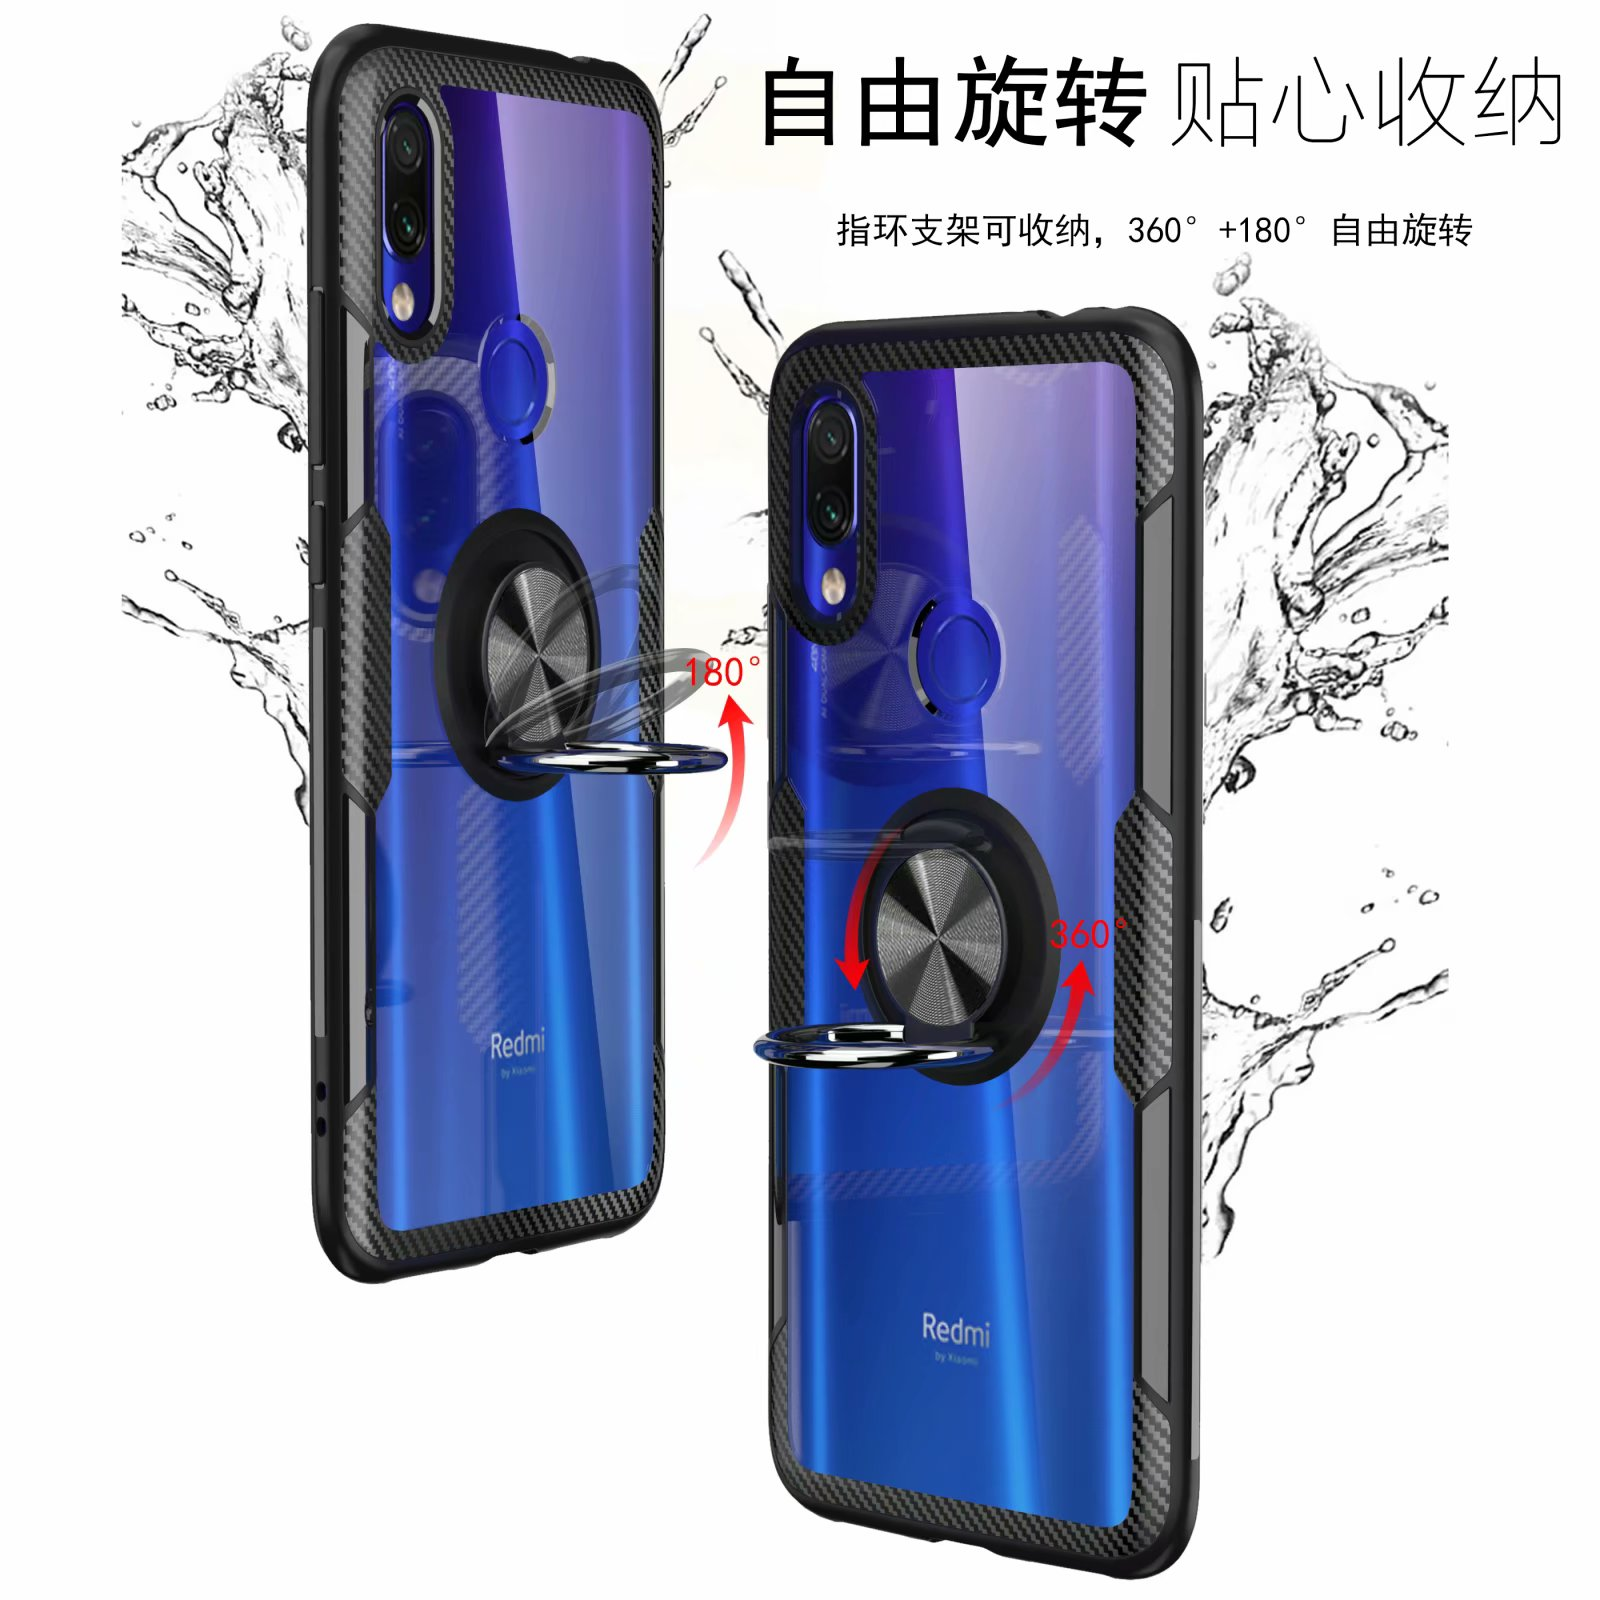 HTB1t.5rUHPpK1RjSZFFq6y5PpXaY For Xiaomi Redmi Note 7 Pro Case With Ring Stand Magnet Transparent shockproof Protective Back Cover case for xiaomi redmi 7